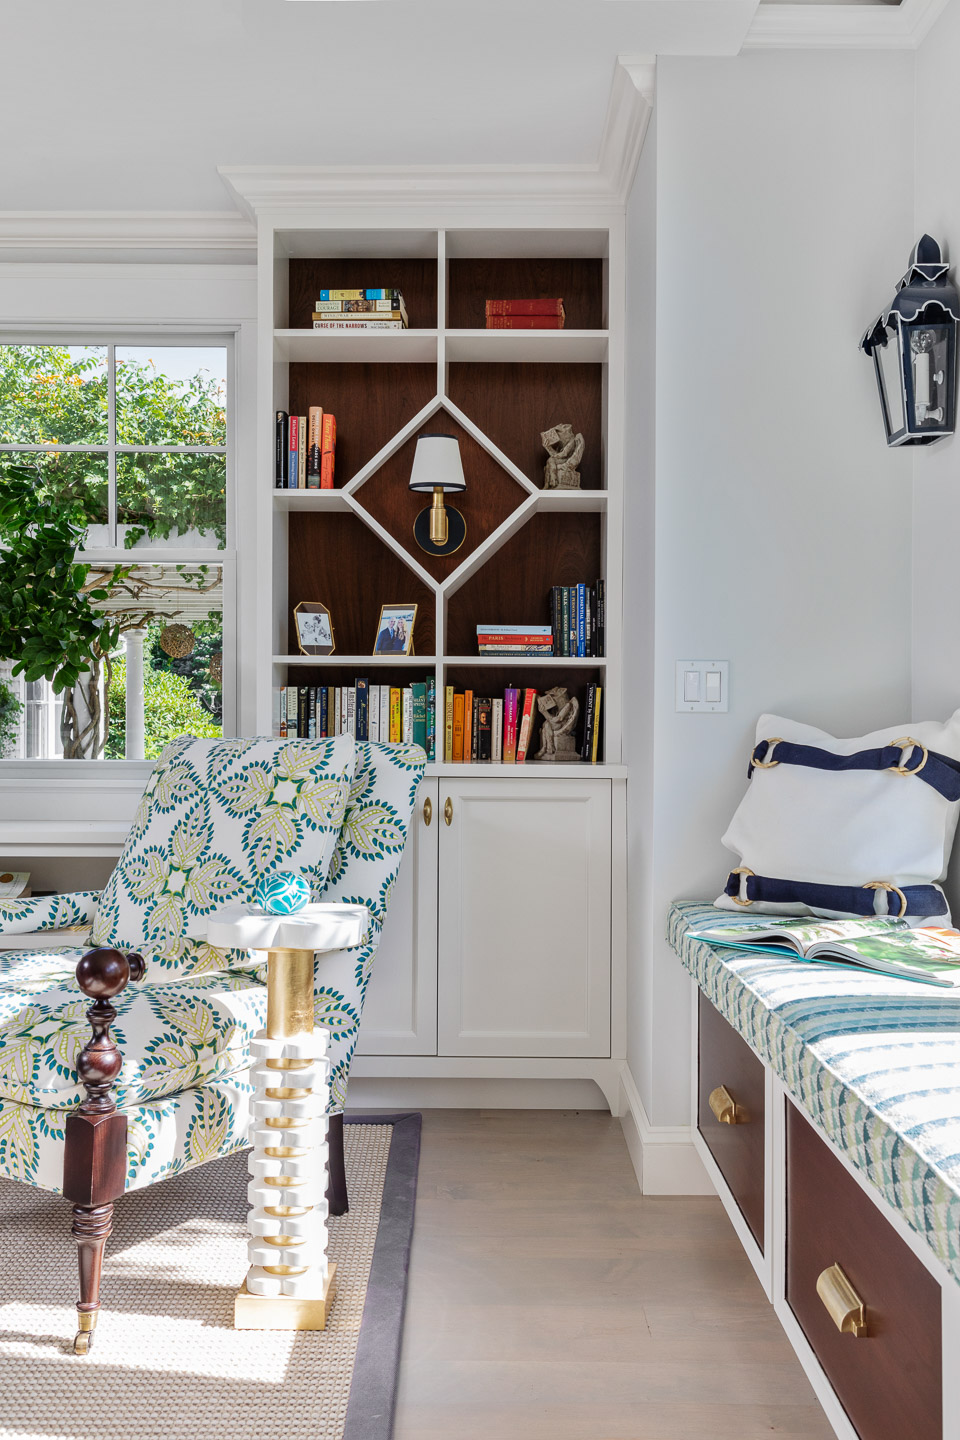 book case, living room, family room, bookcase, bookcase design ideas, window bench, window seating, bench seating, window bench storage, storage ideas